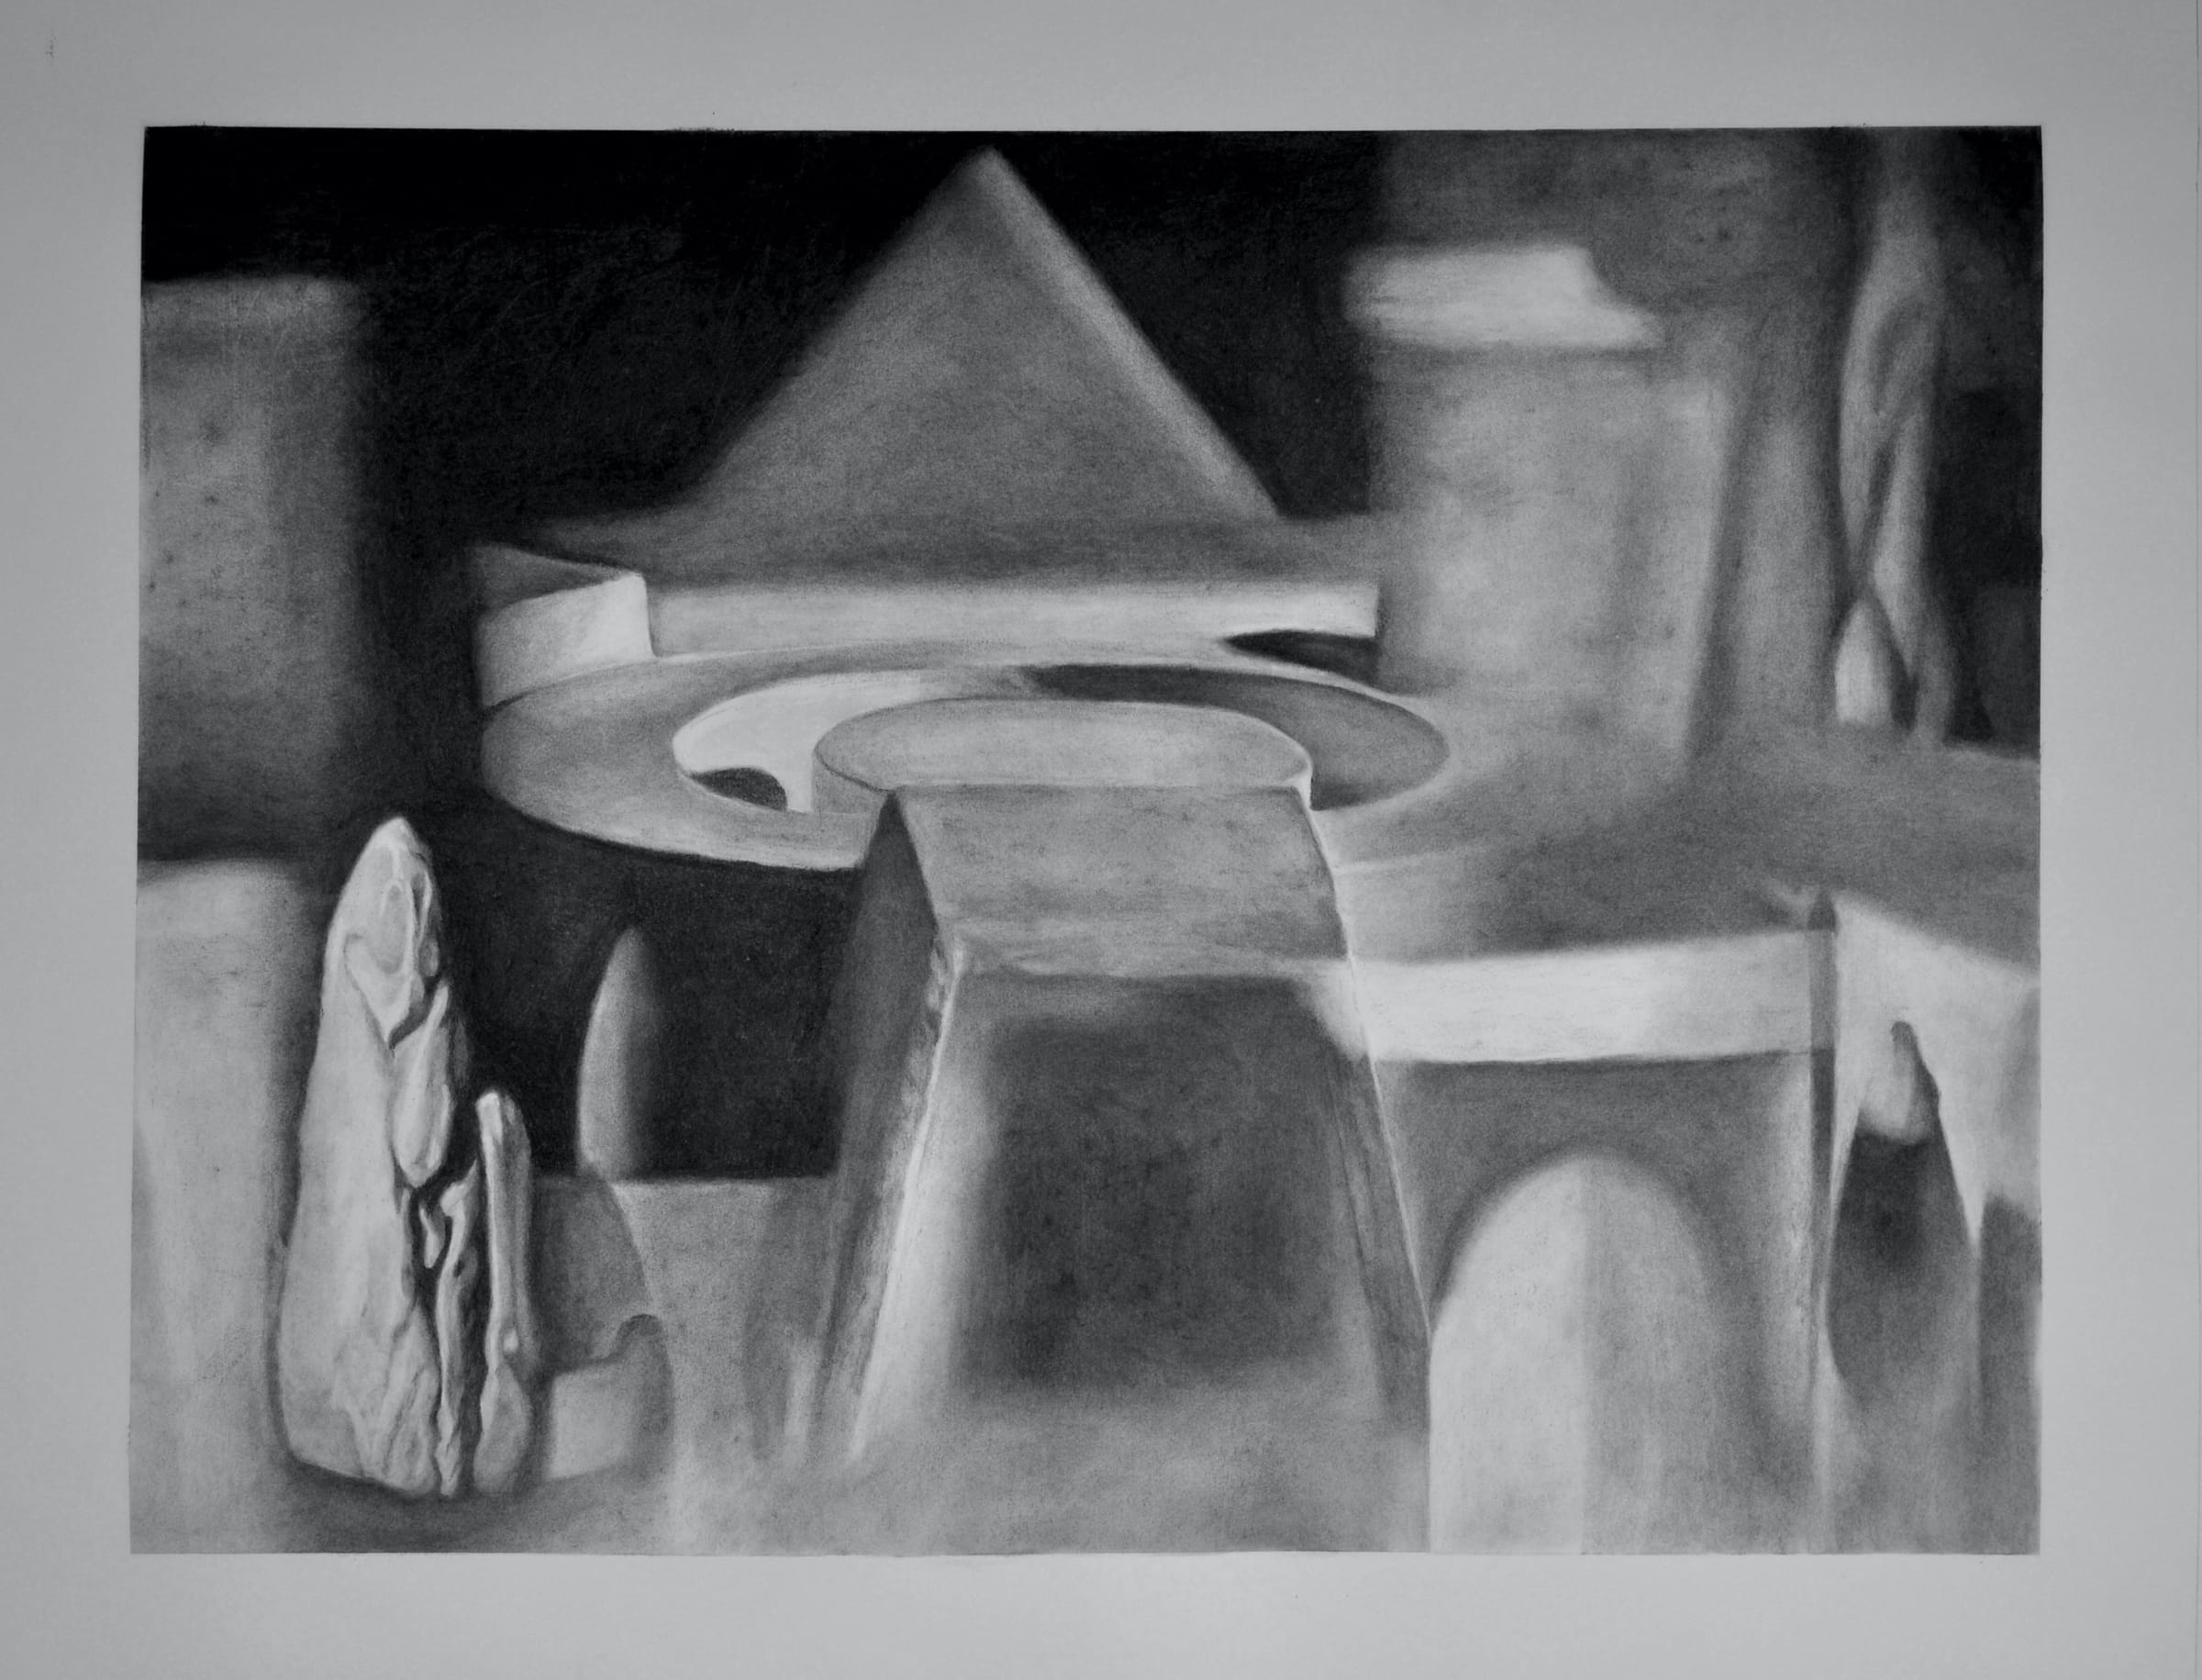 "<span class=""link fancybox-details-link""><a href=""/exhibitions/28/works/artworks1501/"">View Detail Page</a></span><div class=""medium"">charcoal on paper</div> <div class=""dimensions"">85.5 x 109cm</div>"